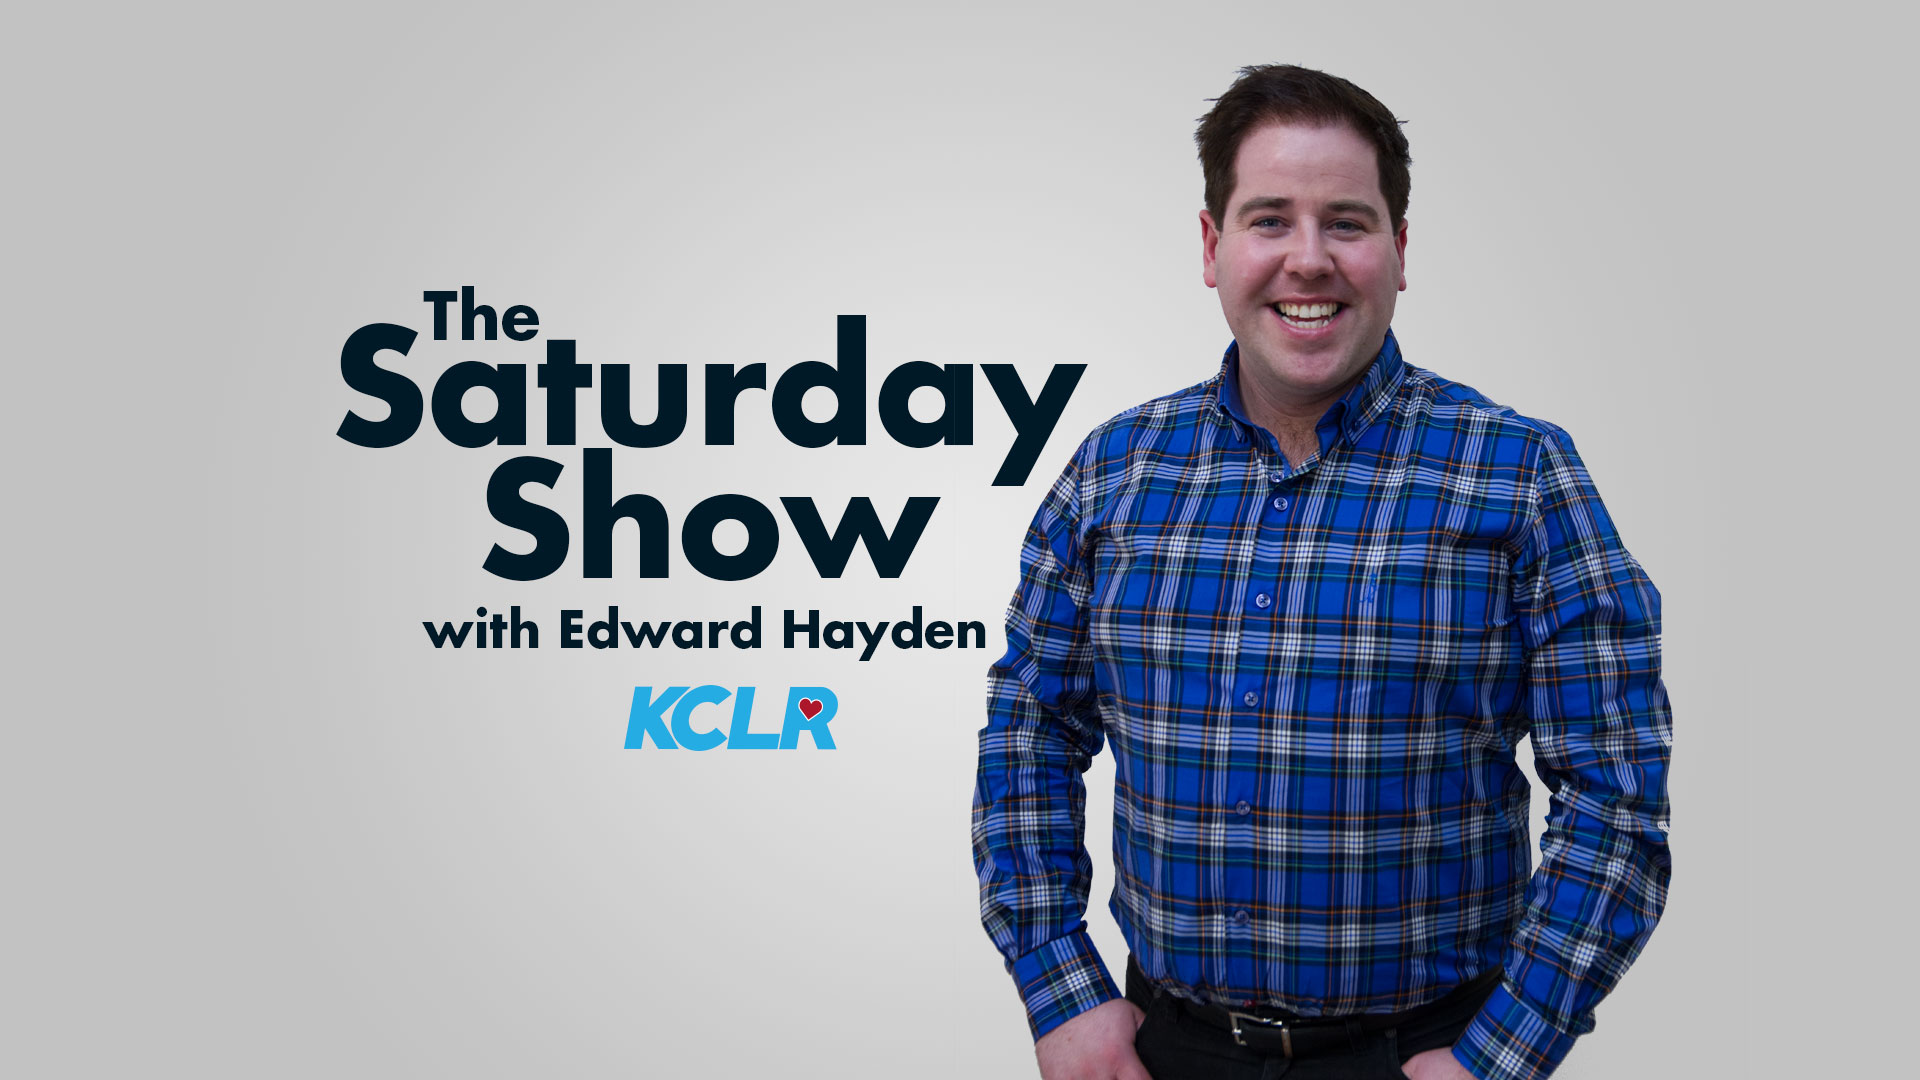 The Saturday Show with Edward Hayden